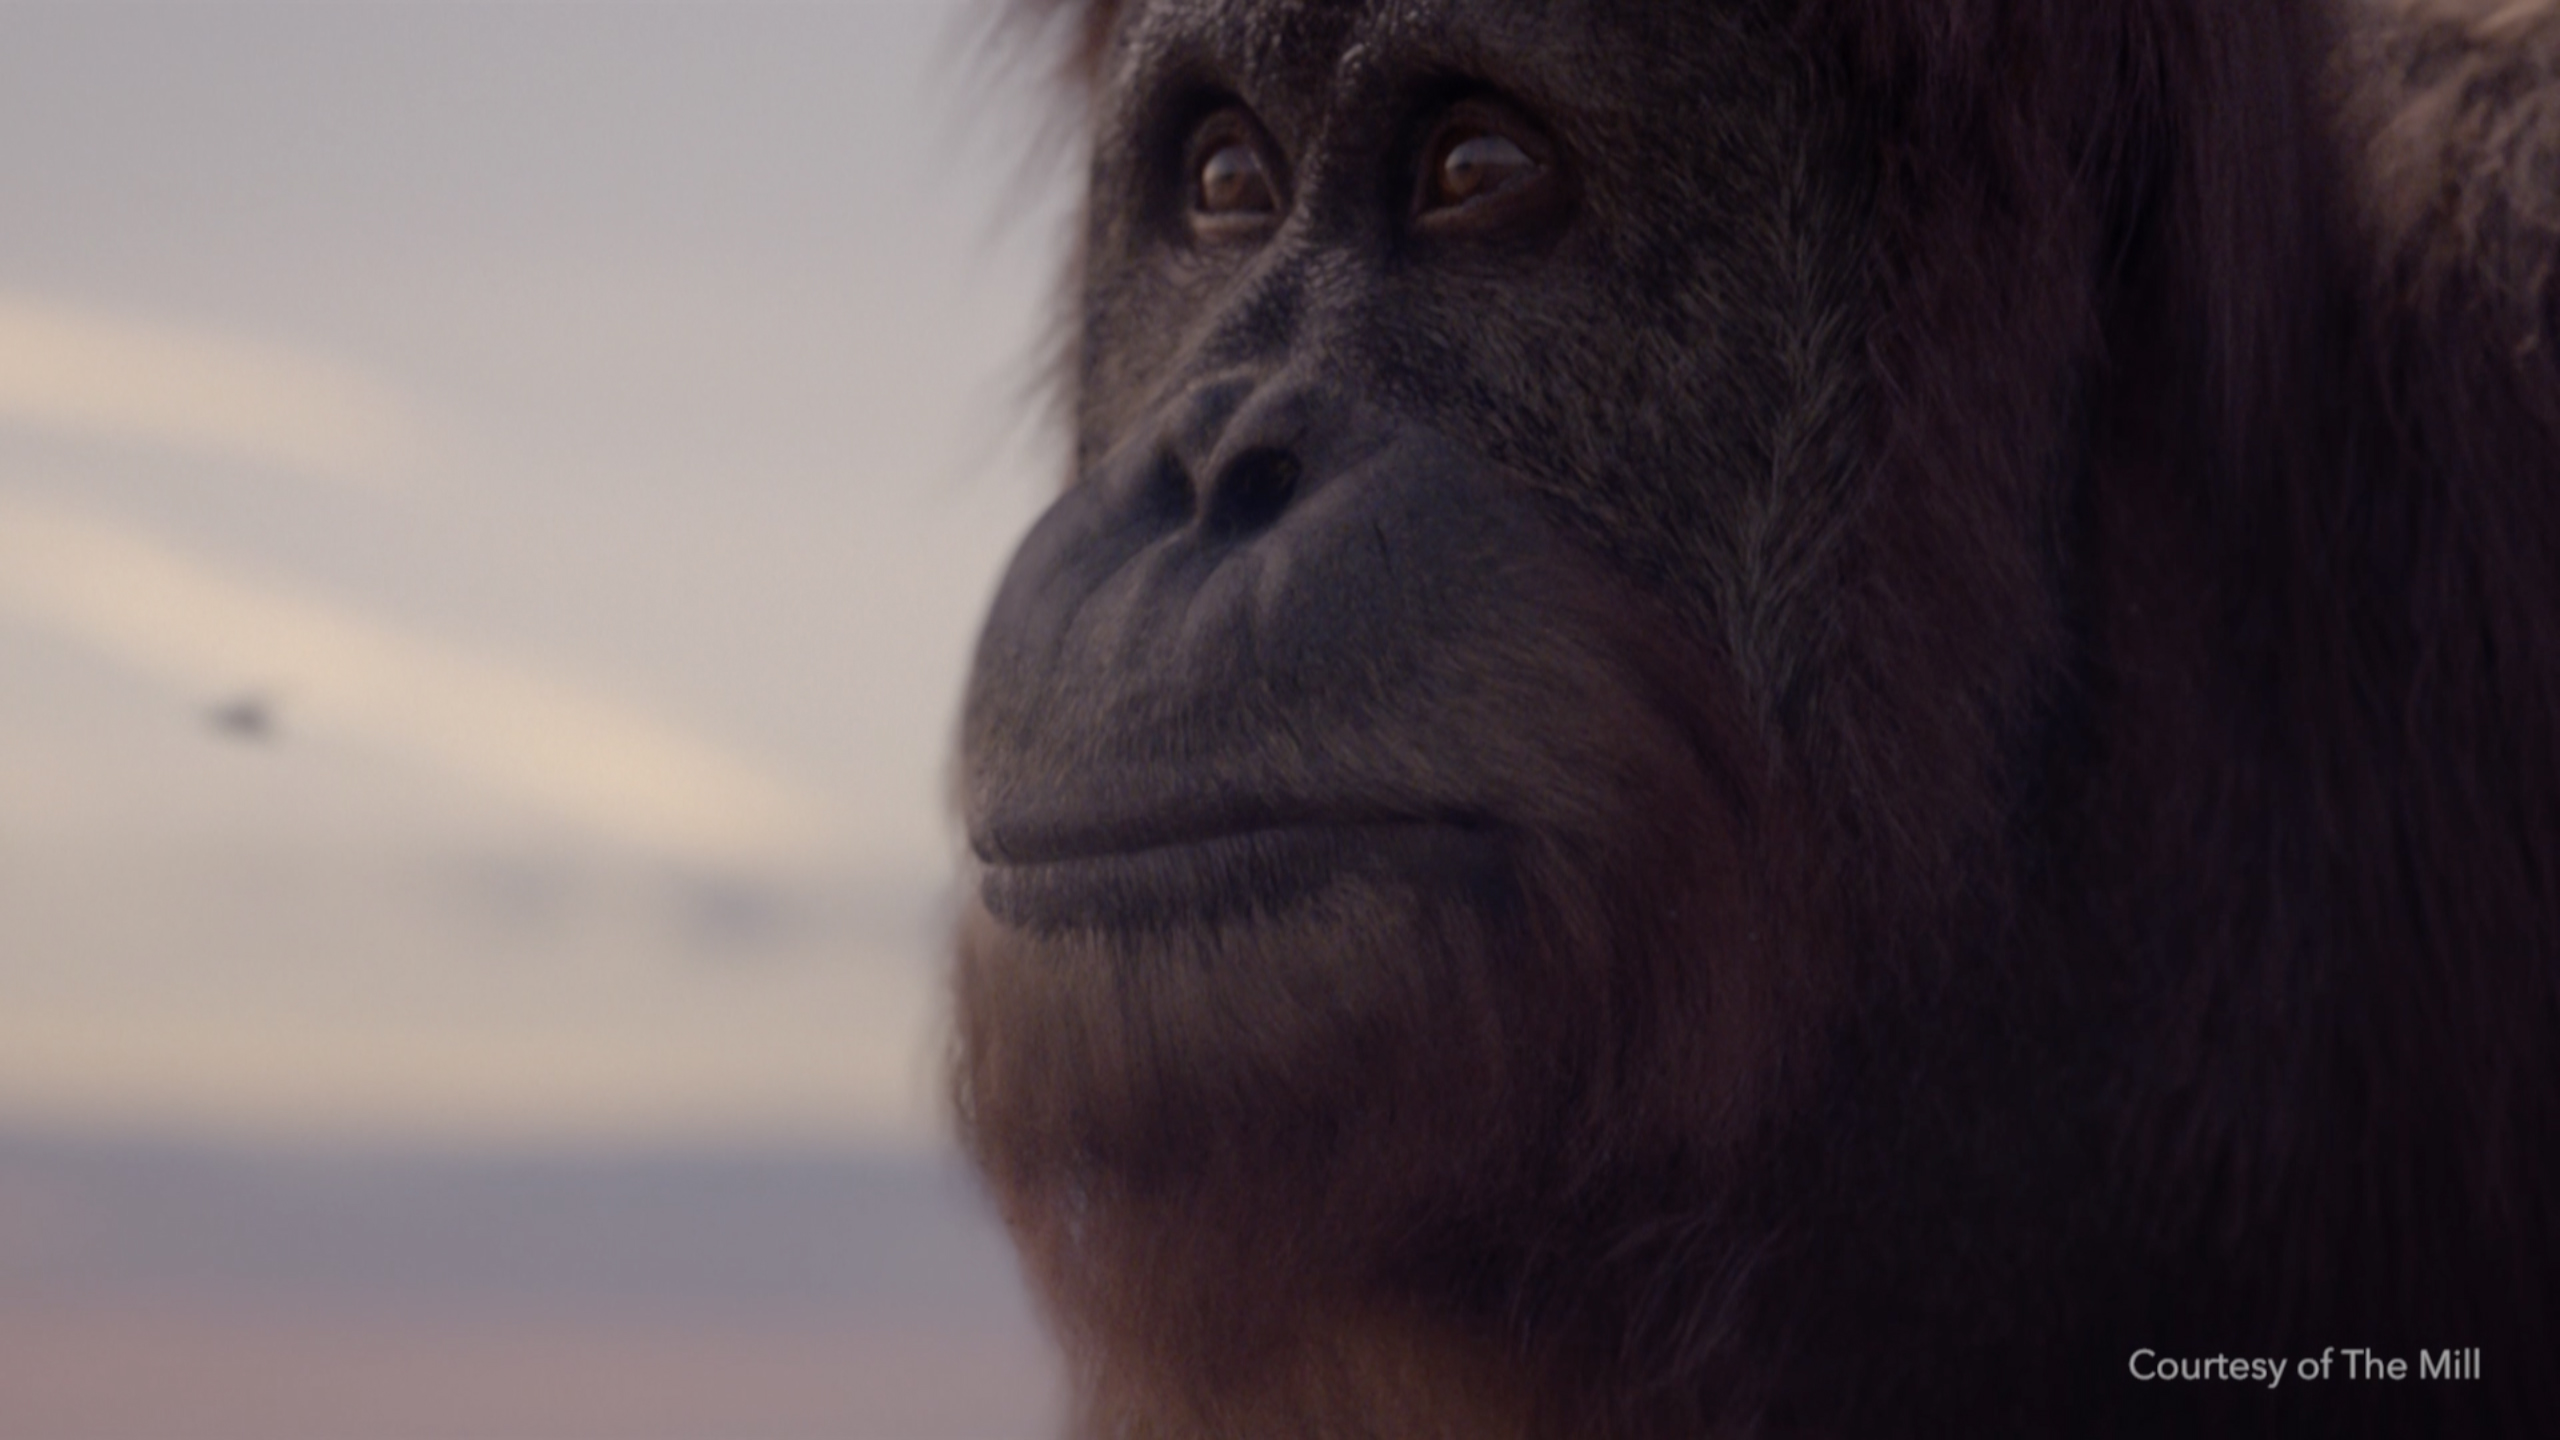 Still from the famous orangutan advert from Scottish and Southern Energy